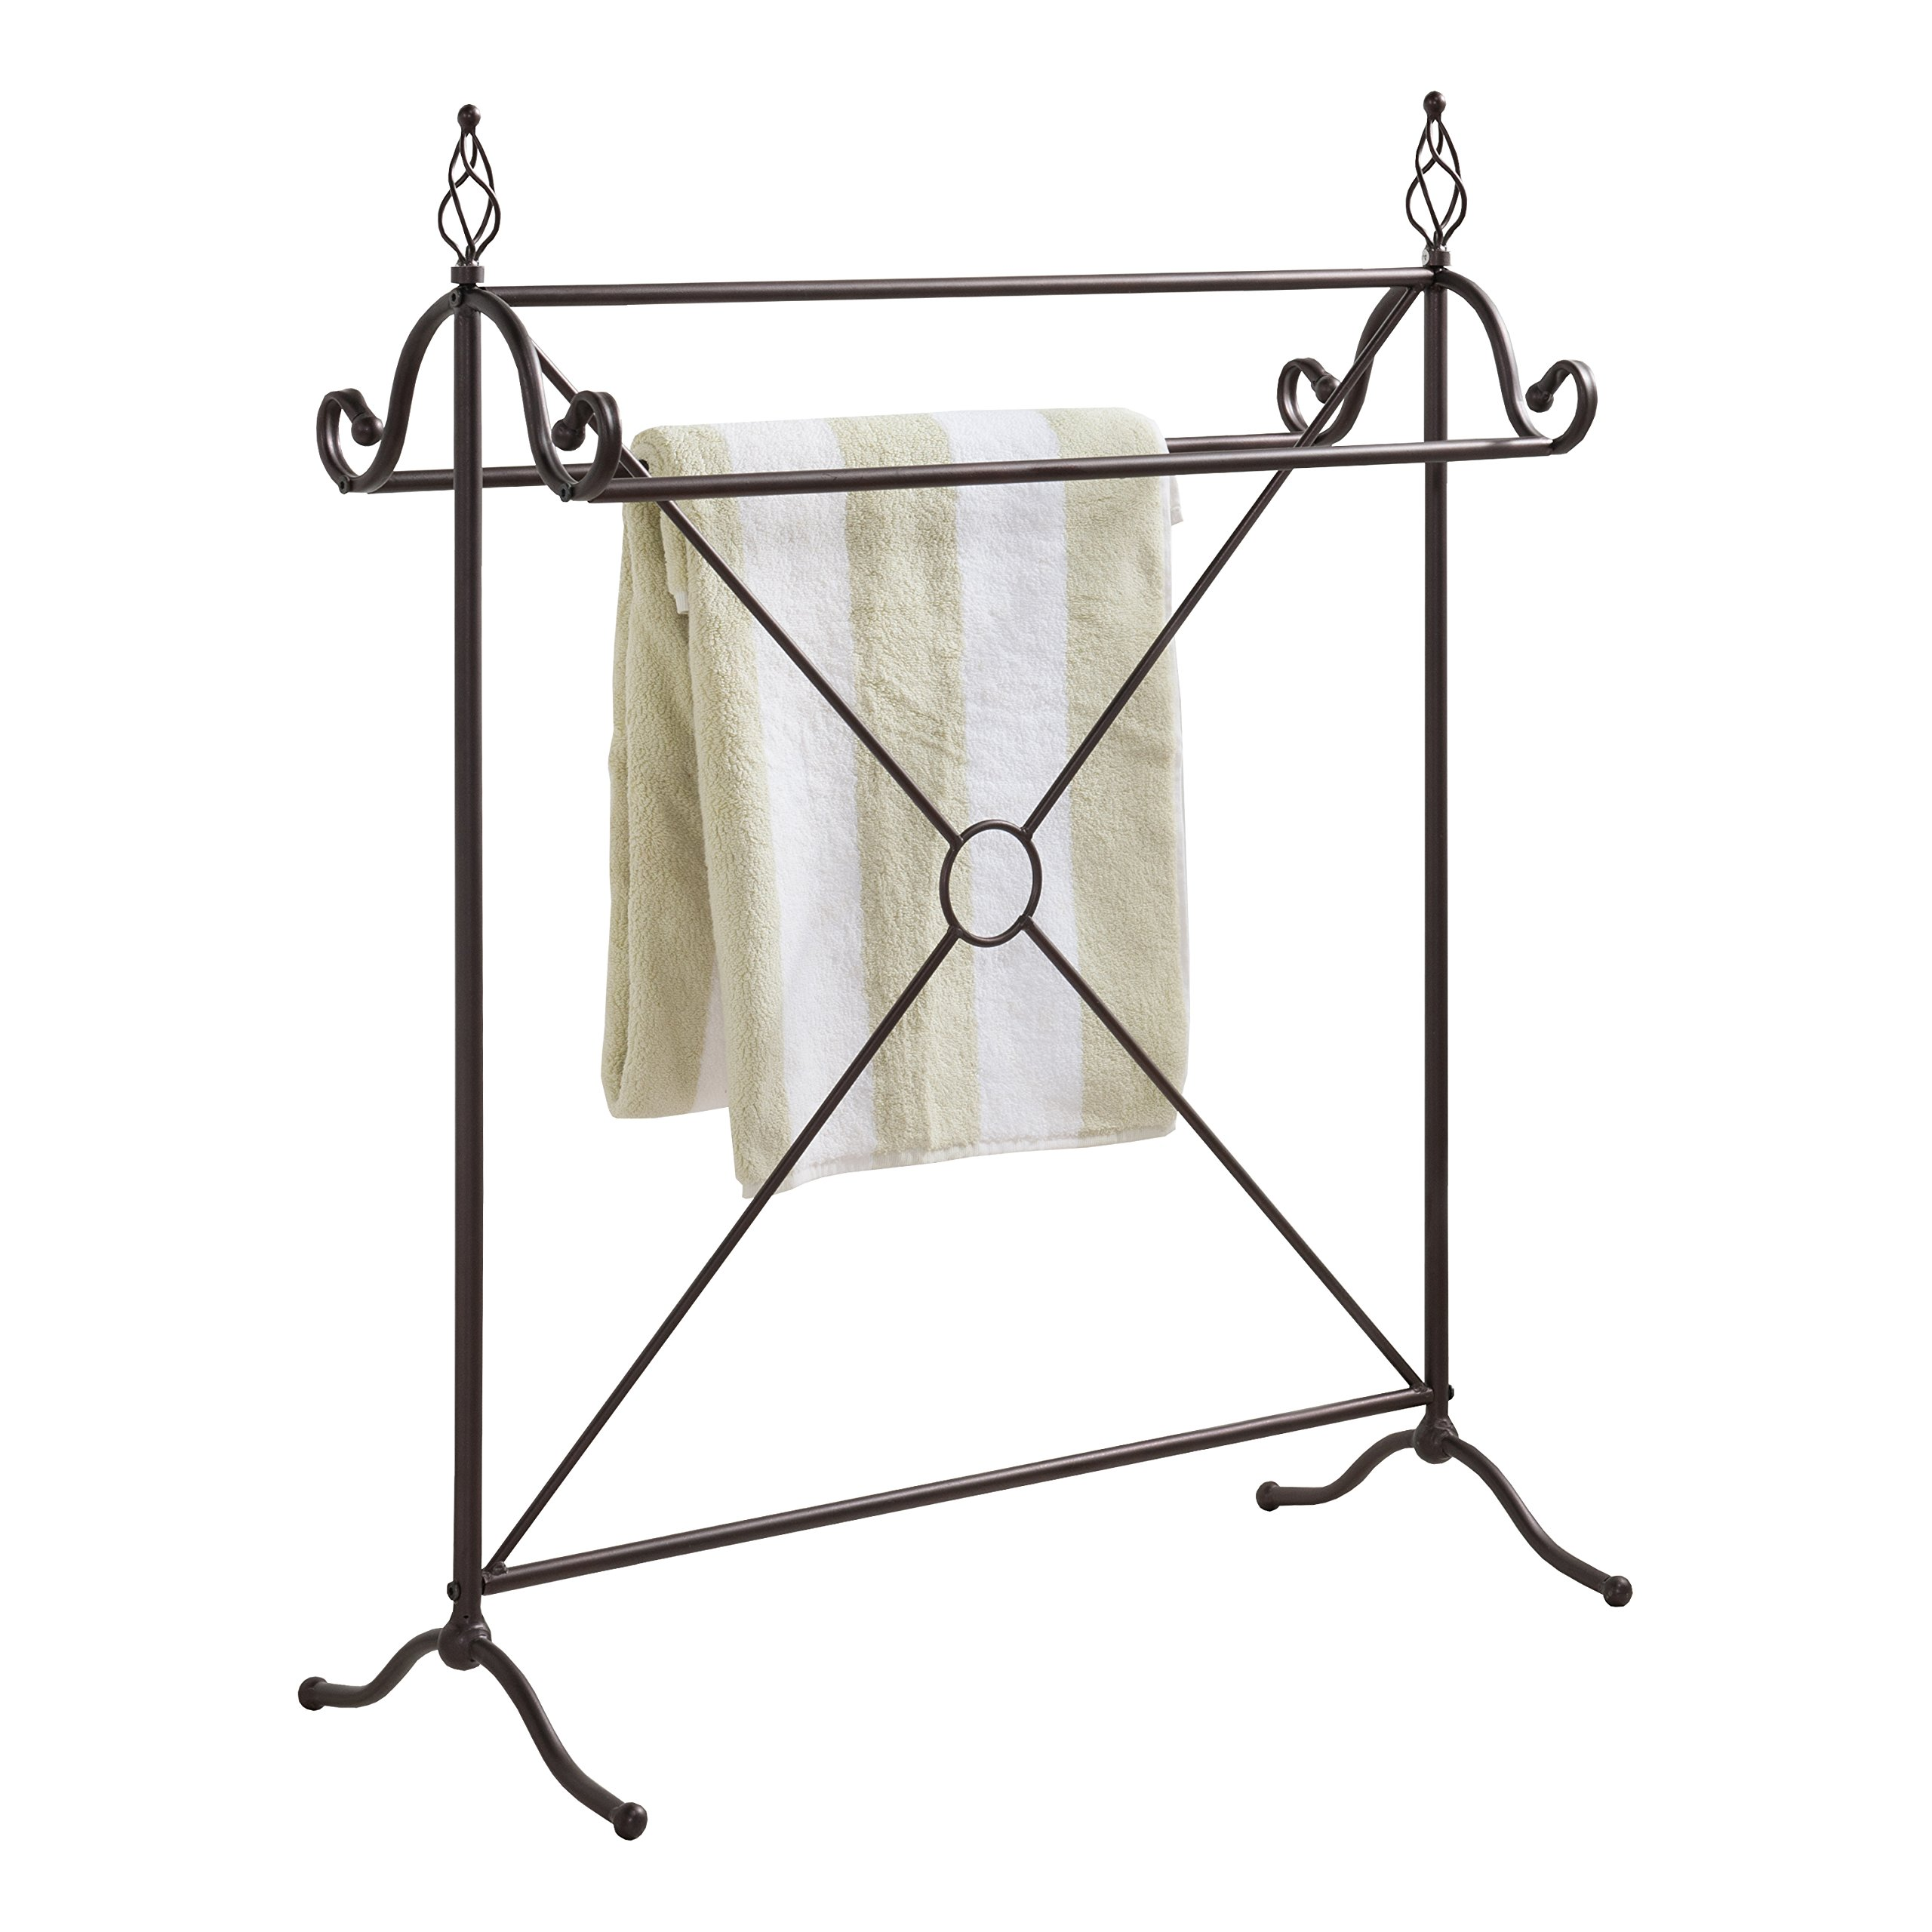 Pilaster Designs - Antique Style Bronze Finish Metal Towel Rack Stand